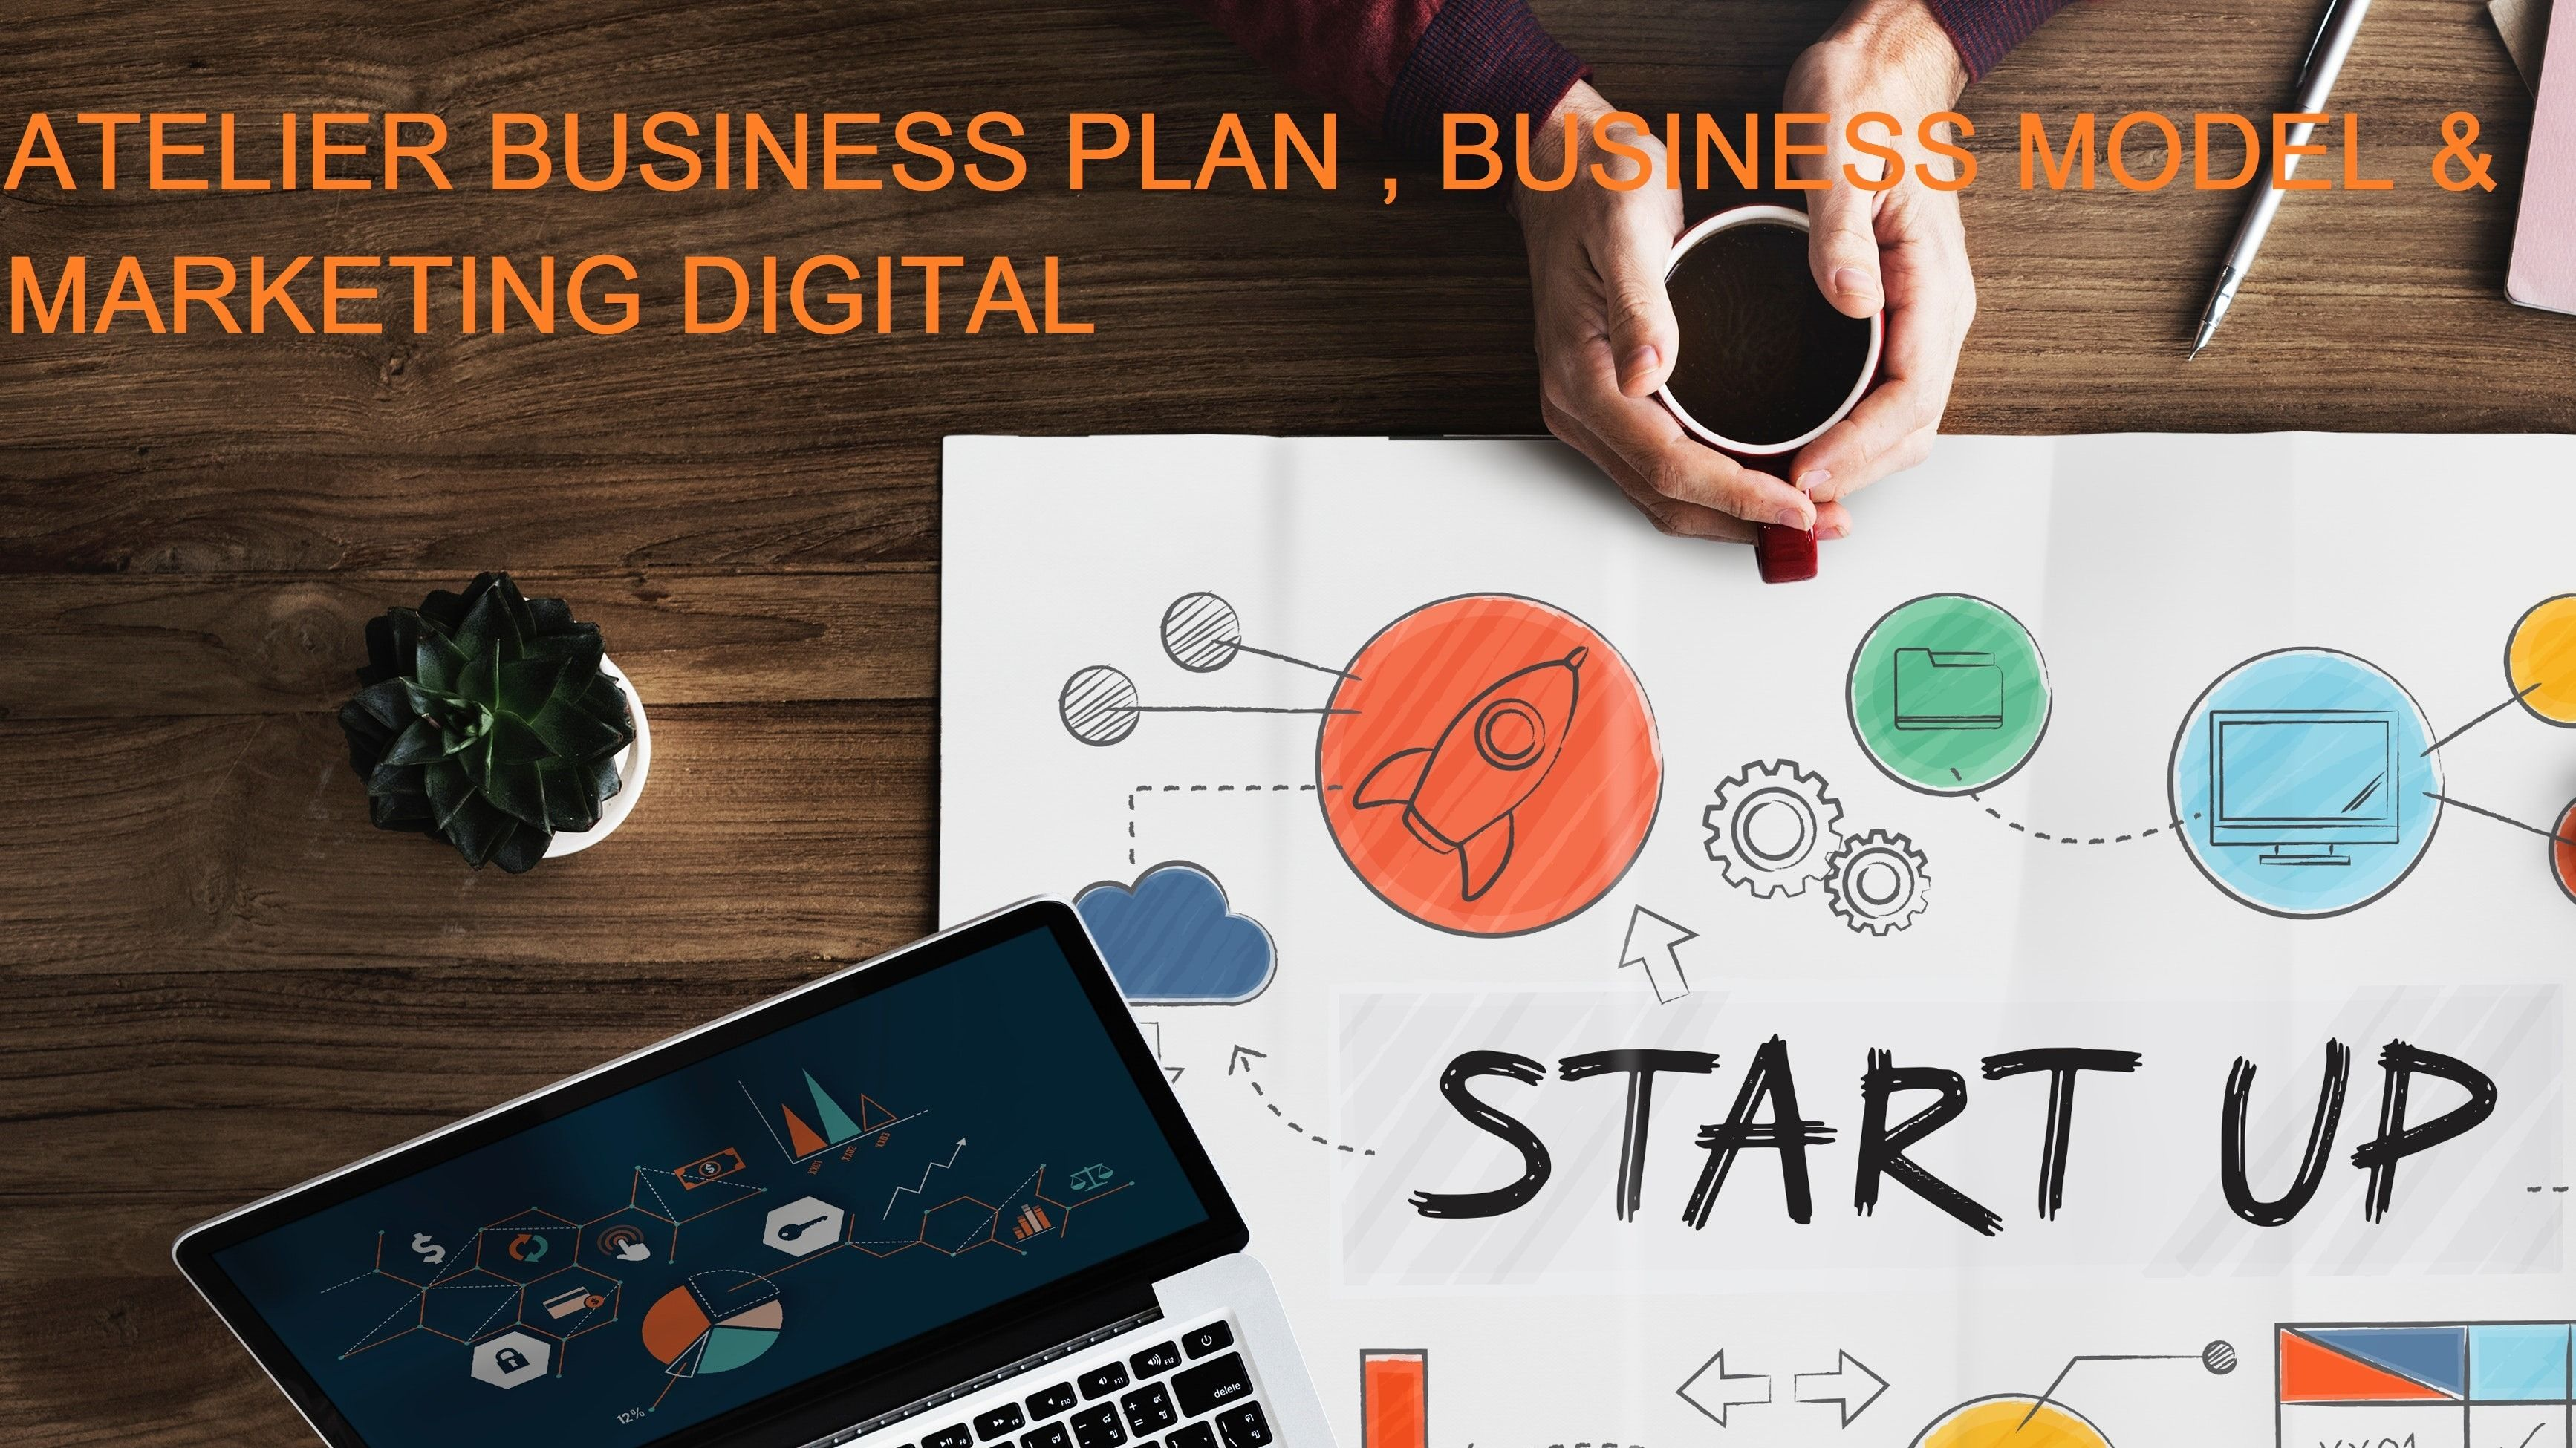 Atelier Business Plan,Business Model & Marketing Digital